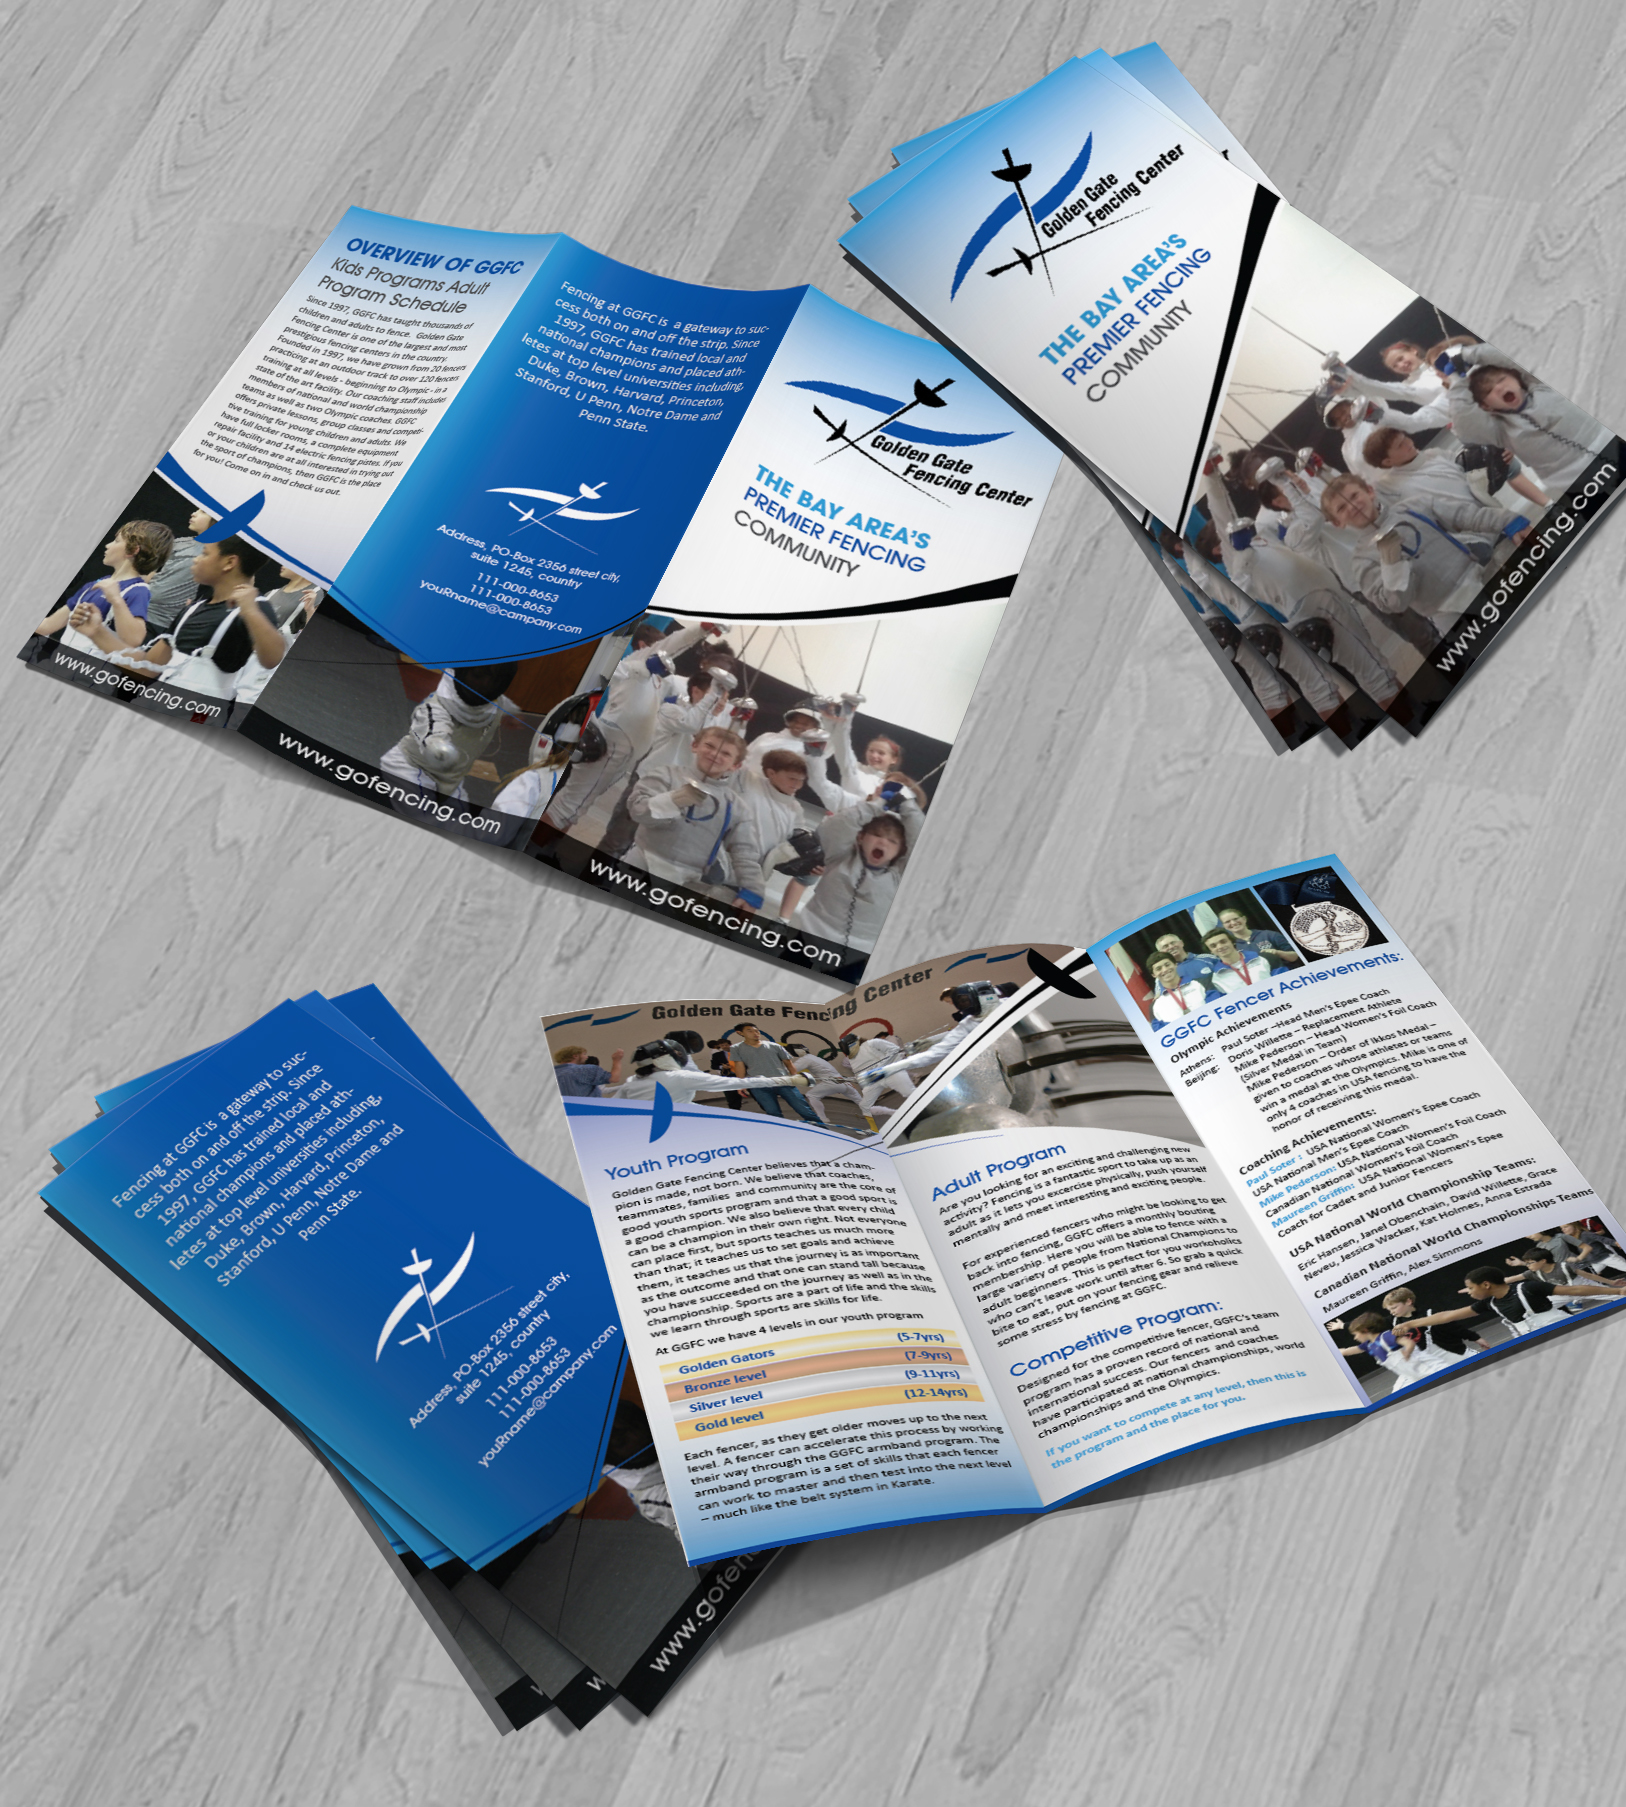 Tri fold brochure for a Fencing Center  - Sports